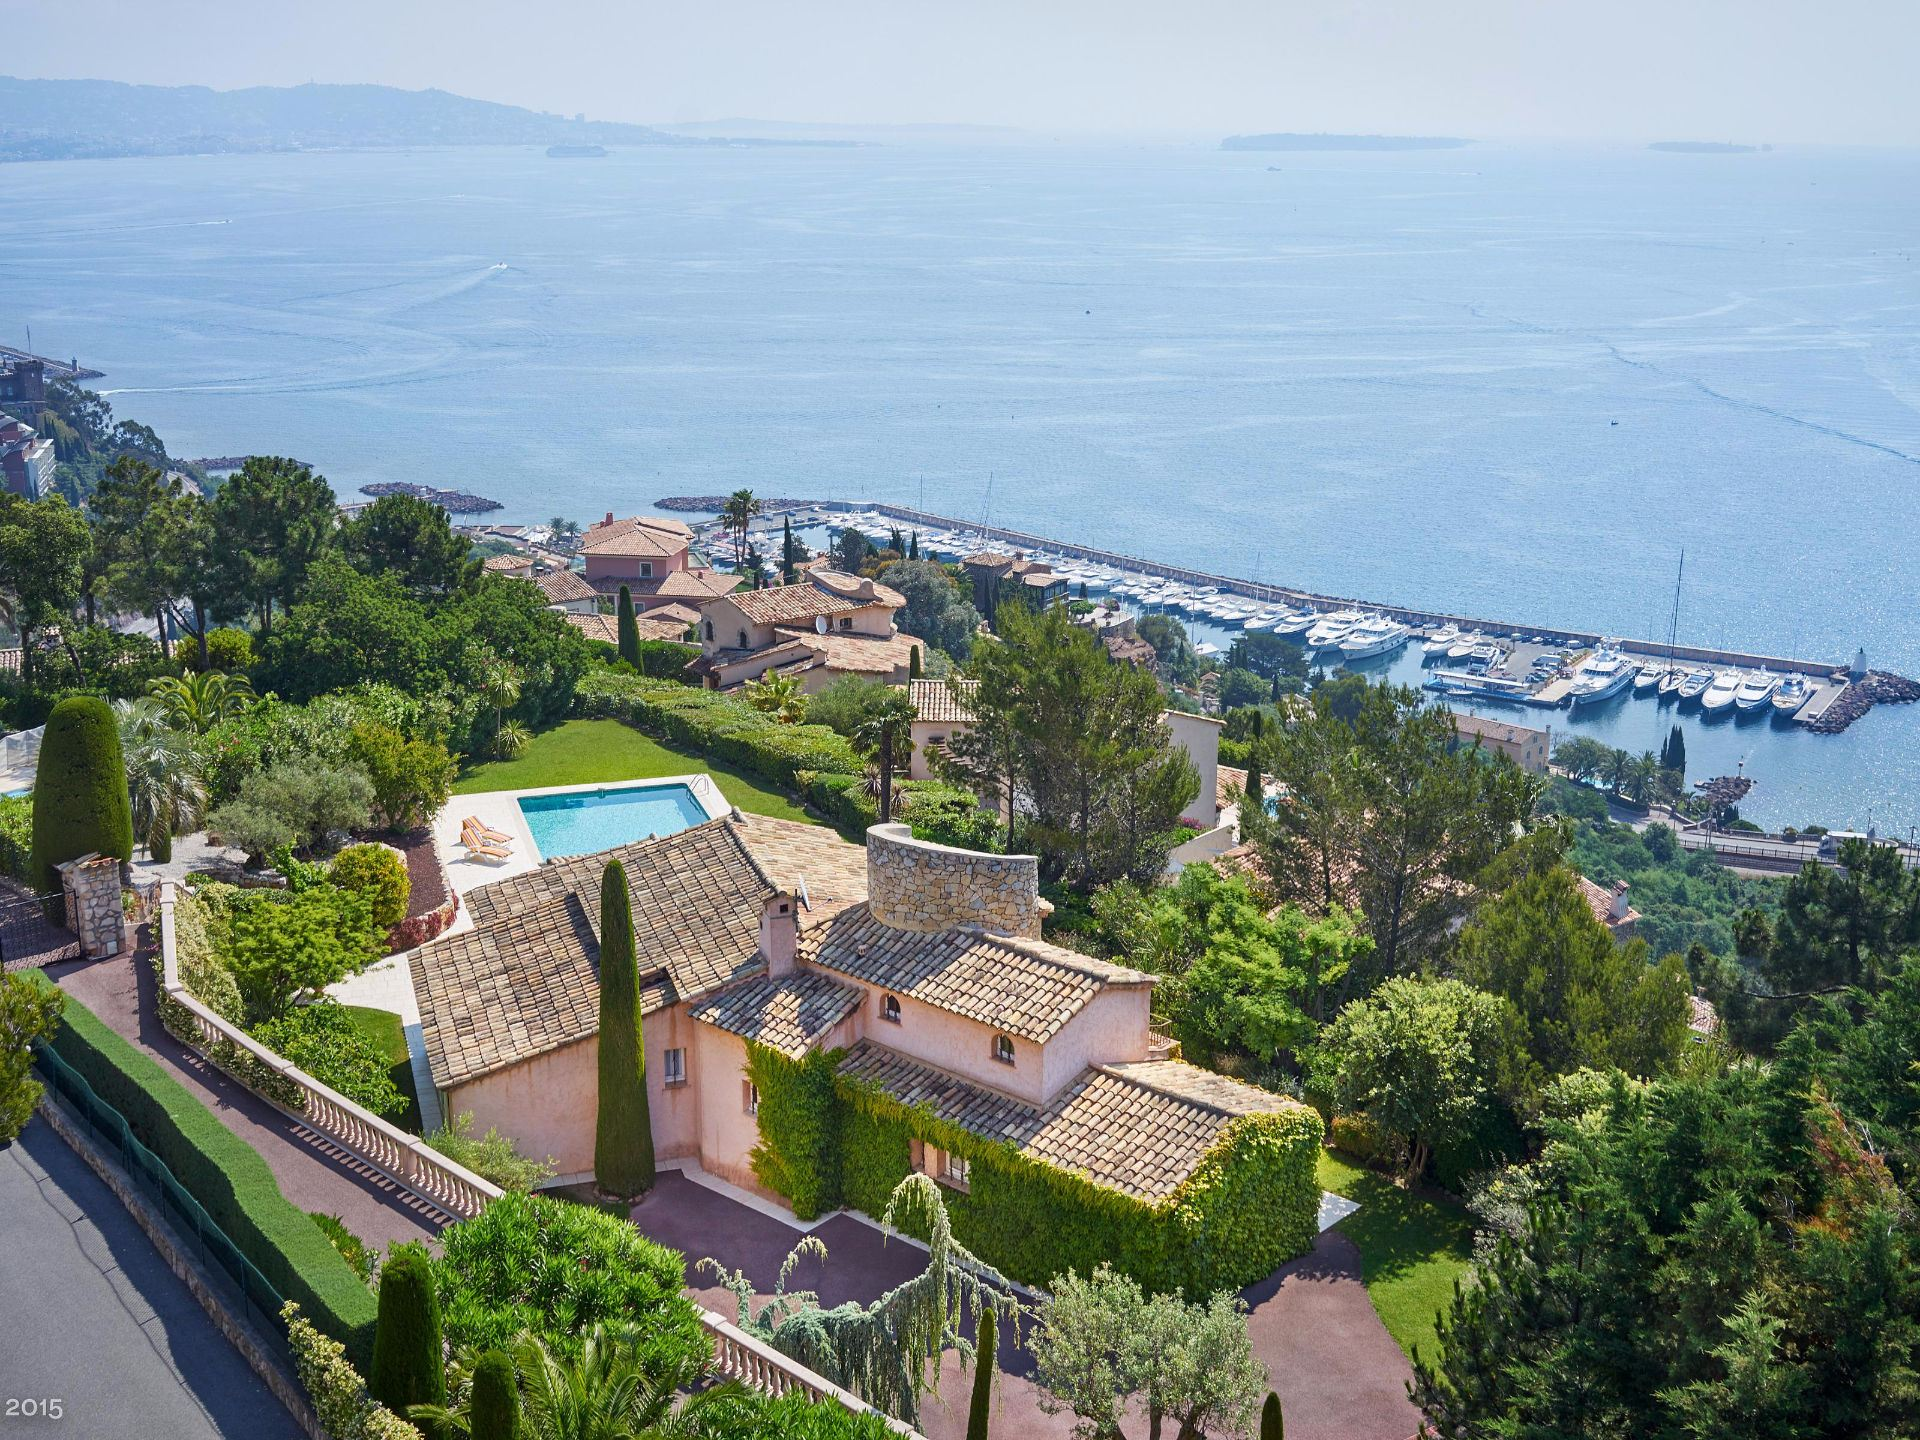 Single Family Home for Sale at Sole agents - Provençal house with panoramic sea views Theoule Sur Mer, Provence-Alpes-Cote D'Azur, 06590 France